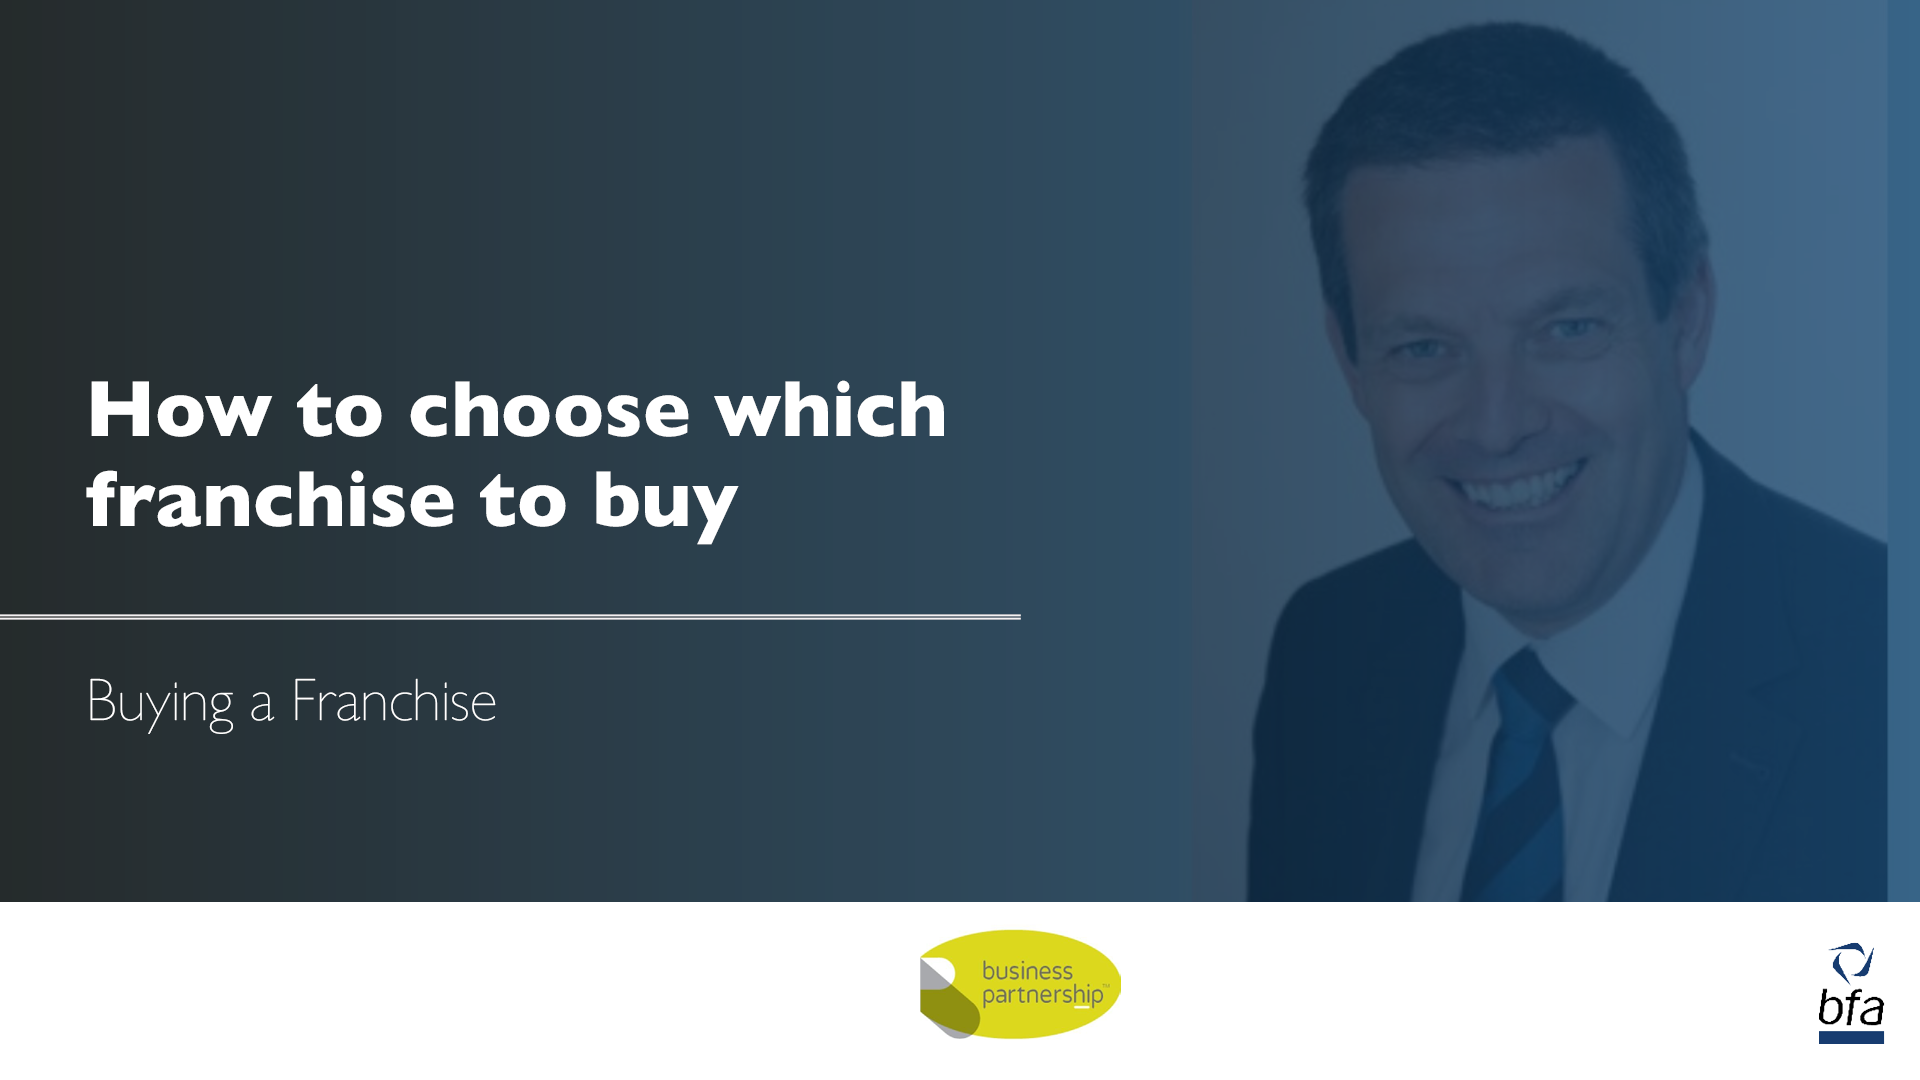 Director of Business Partnership shares tips on how to choose which franchise to buy